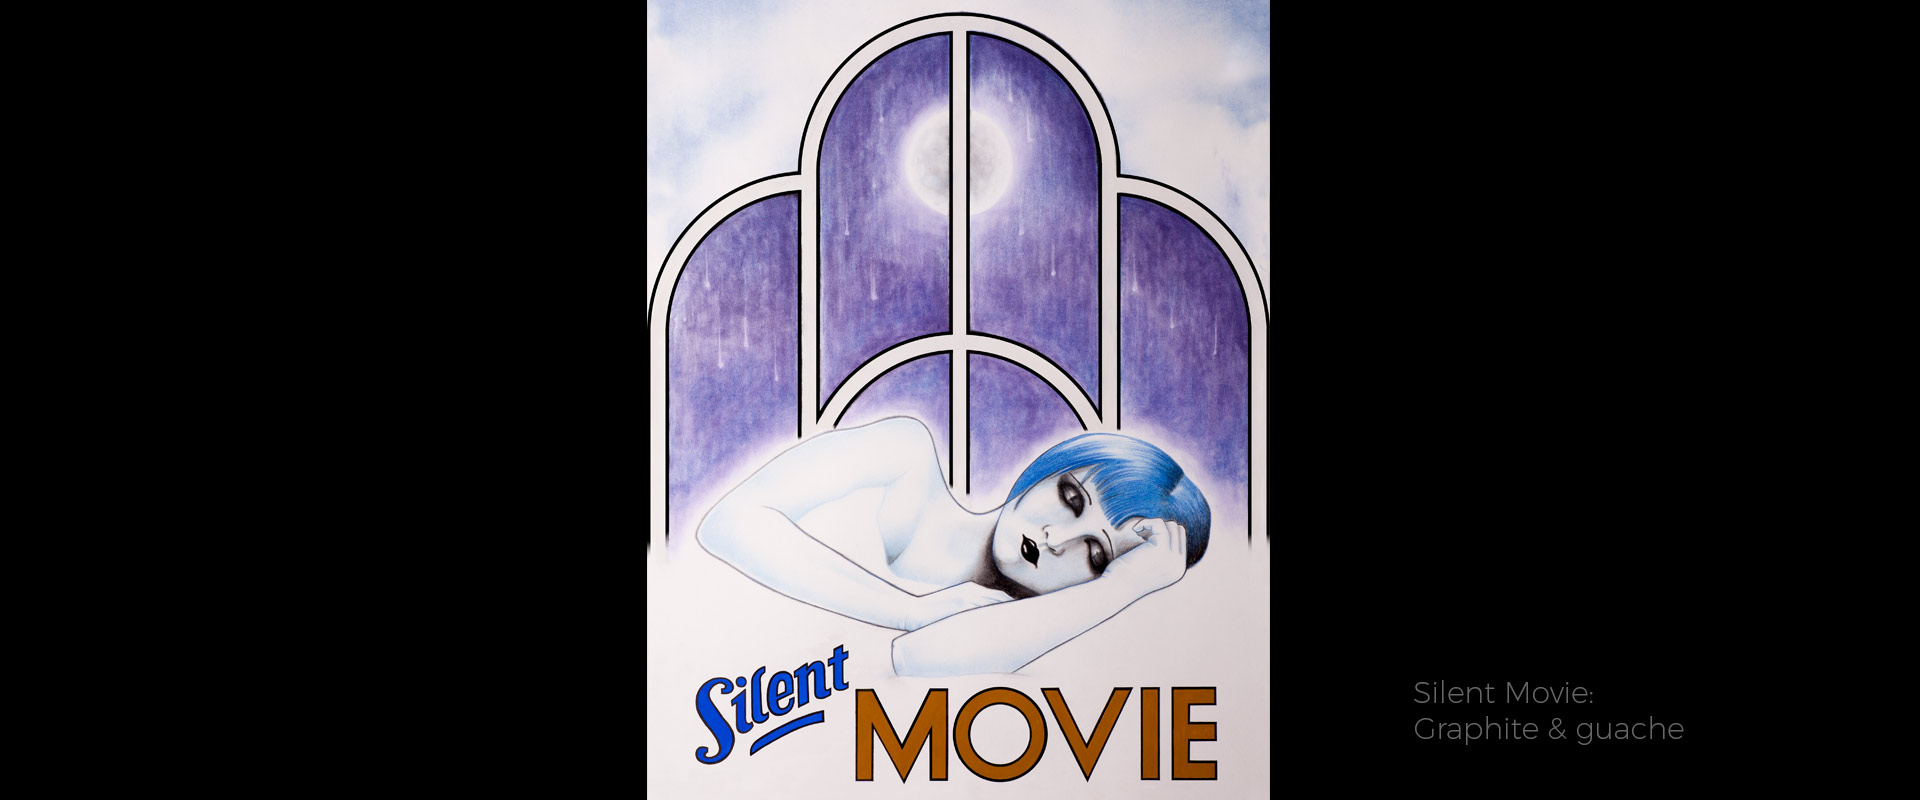 Silent movie, illustration by David Hamley